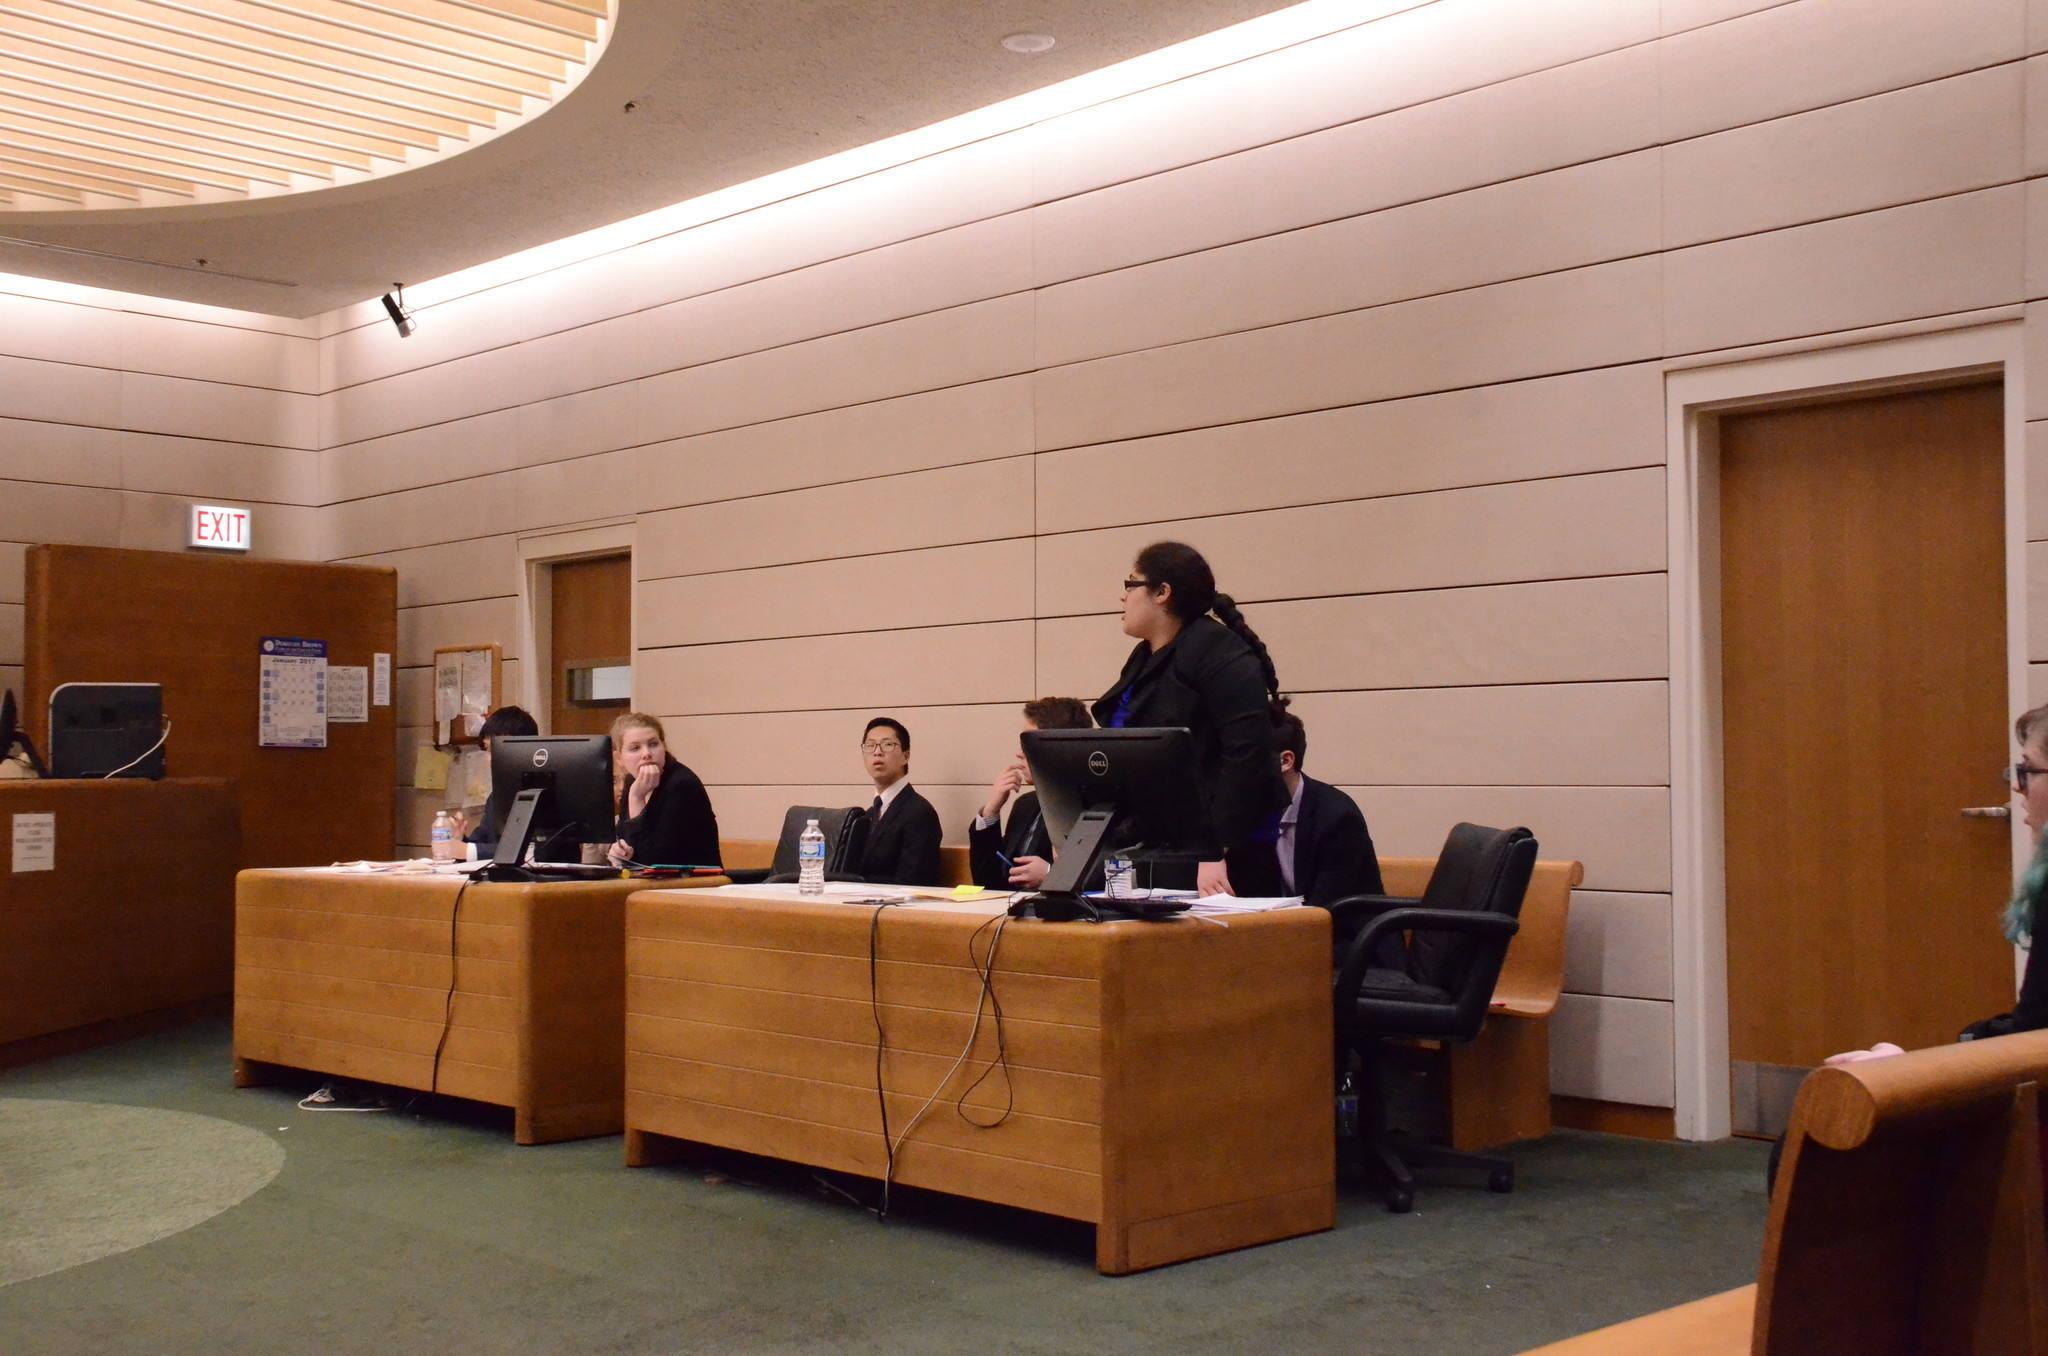 high school teams gain valuable experience at th annual mock high school teams gain valuable experience at 4th annual mock trial invitational evanston review